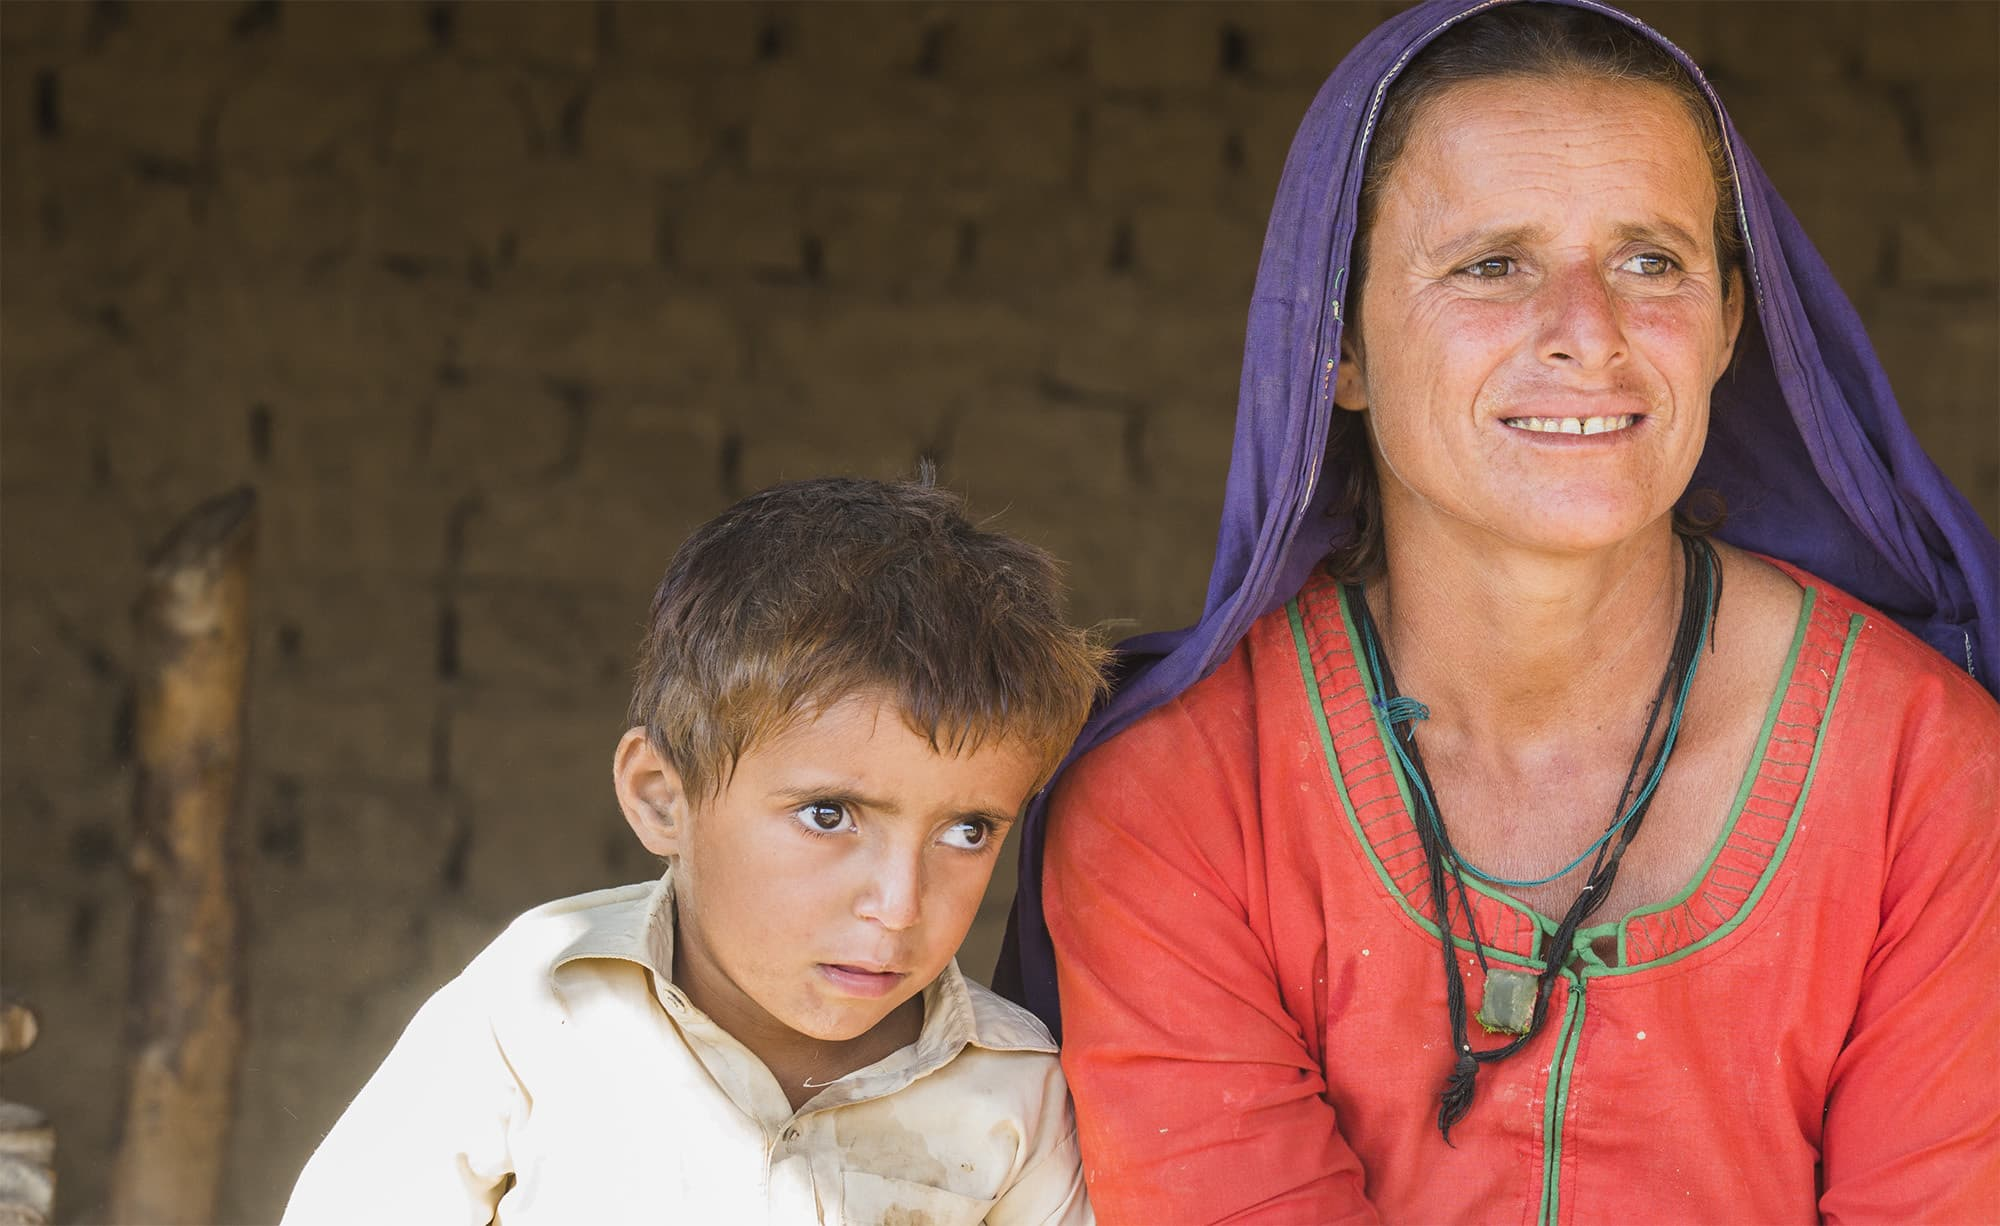 Zahida, a local of Allah Bux Tewna, a village in Dadu is pictured in her home with her son. - Photo by Shameen Khan